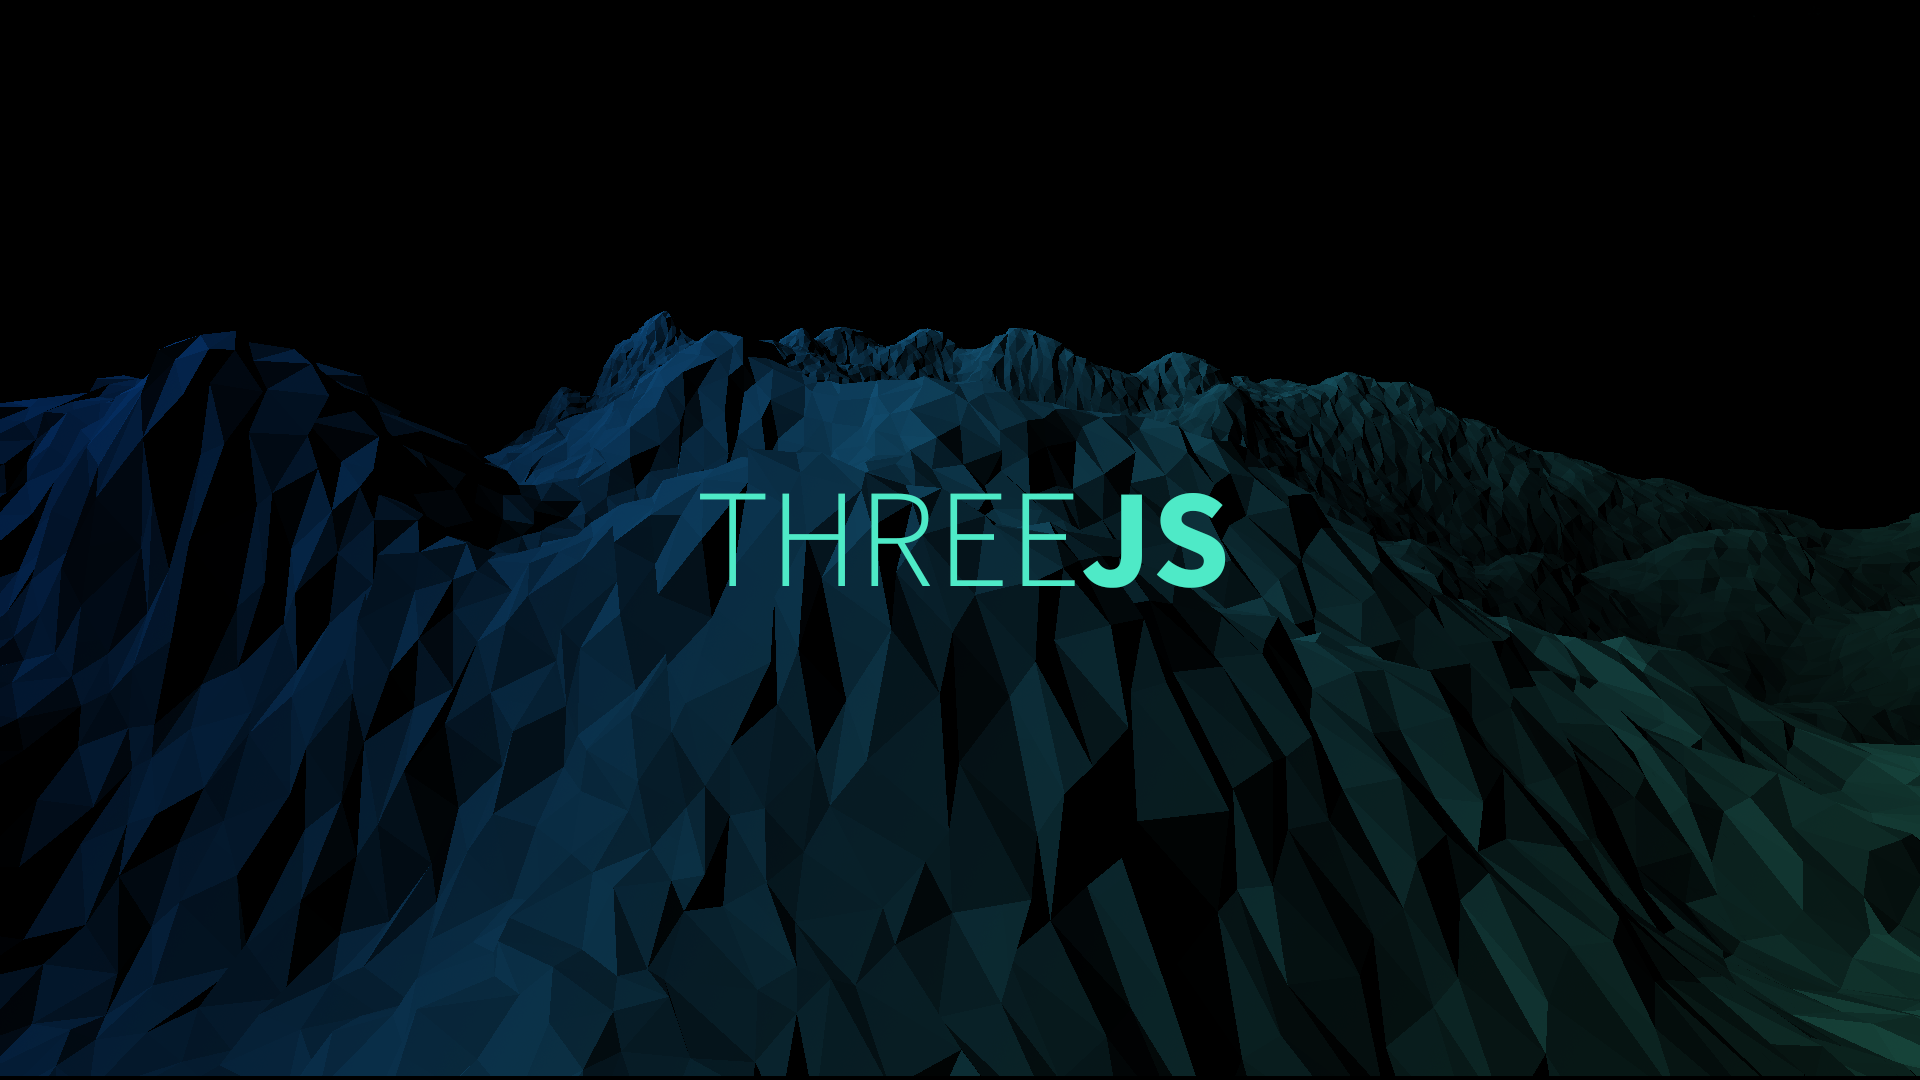 Three js: WebGL for Humans - Nahuel A  Verón - Medium